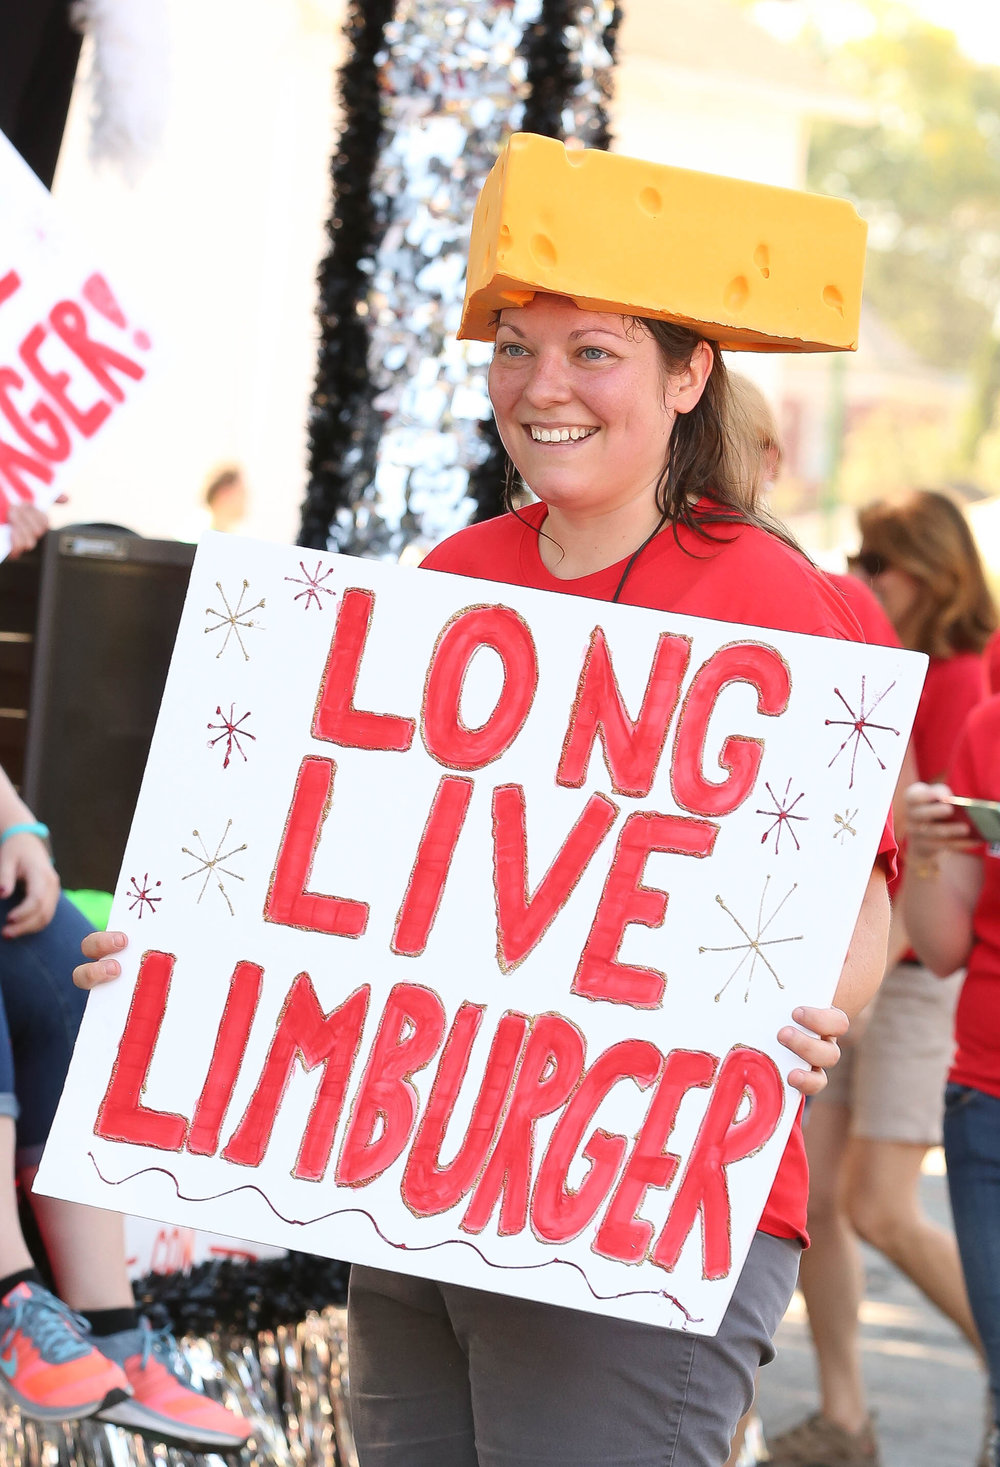 long live limburger.jpg